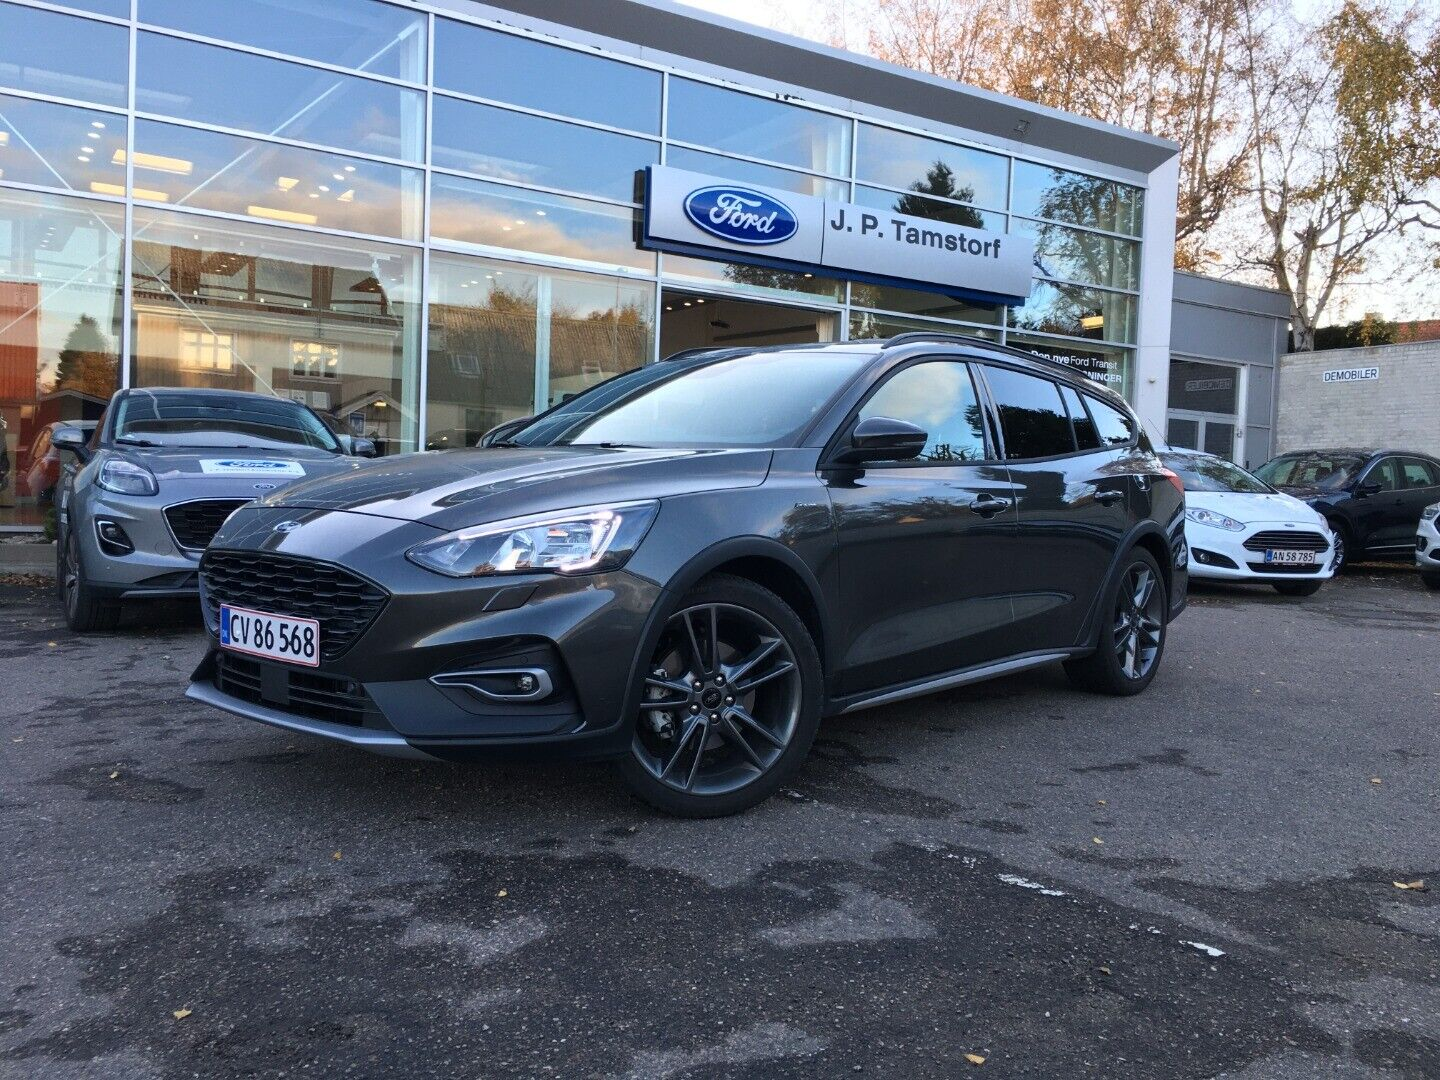 Ford Focus 1,0 EcoBoost mHEV Active X stc. 5d - 294.900 kr.